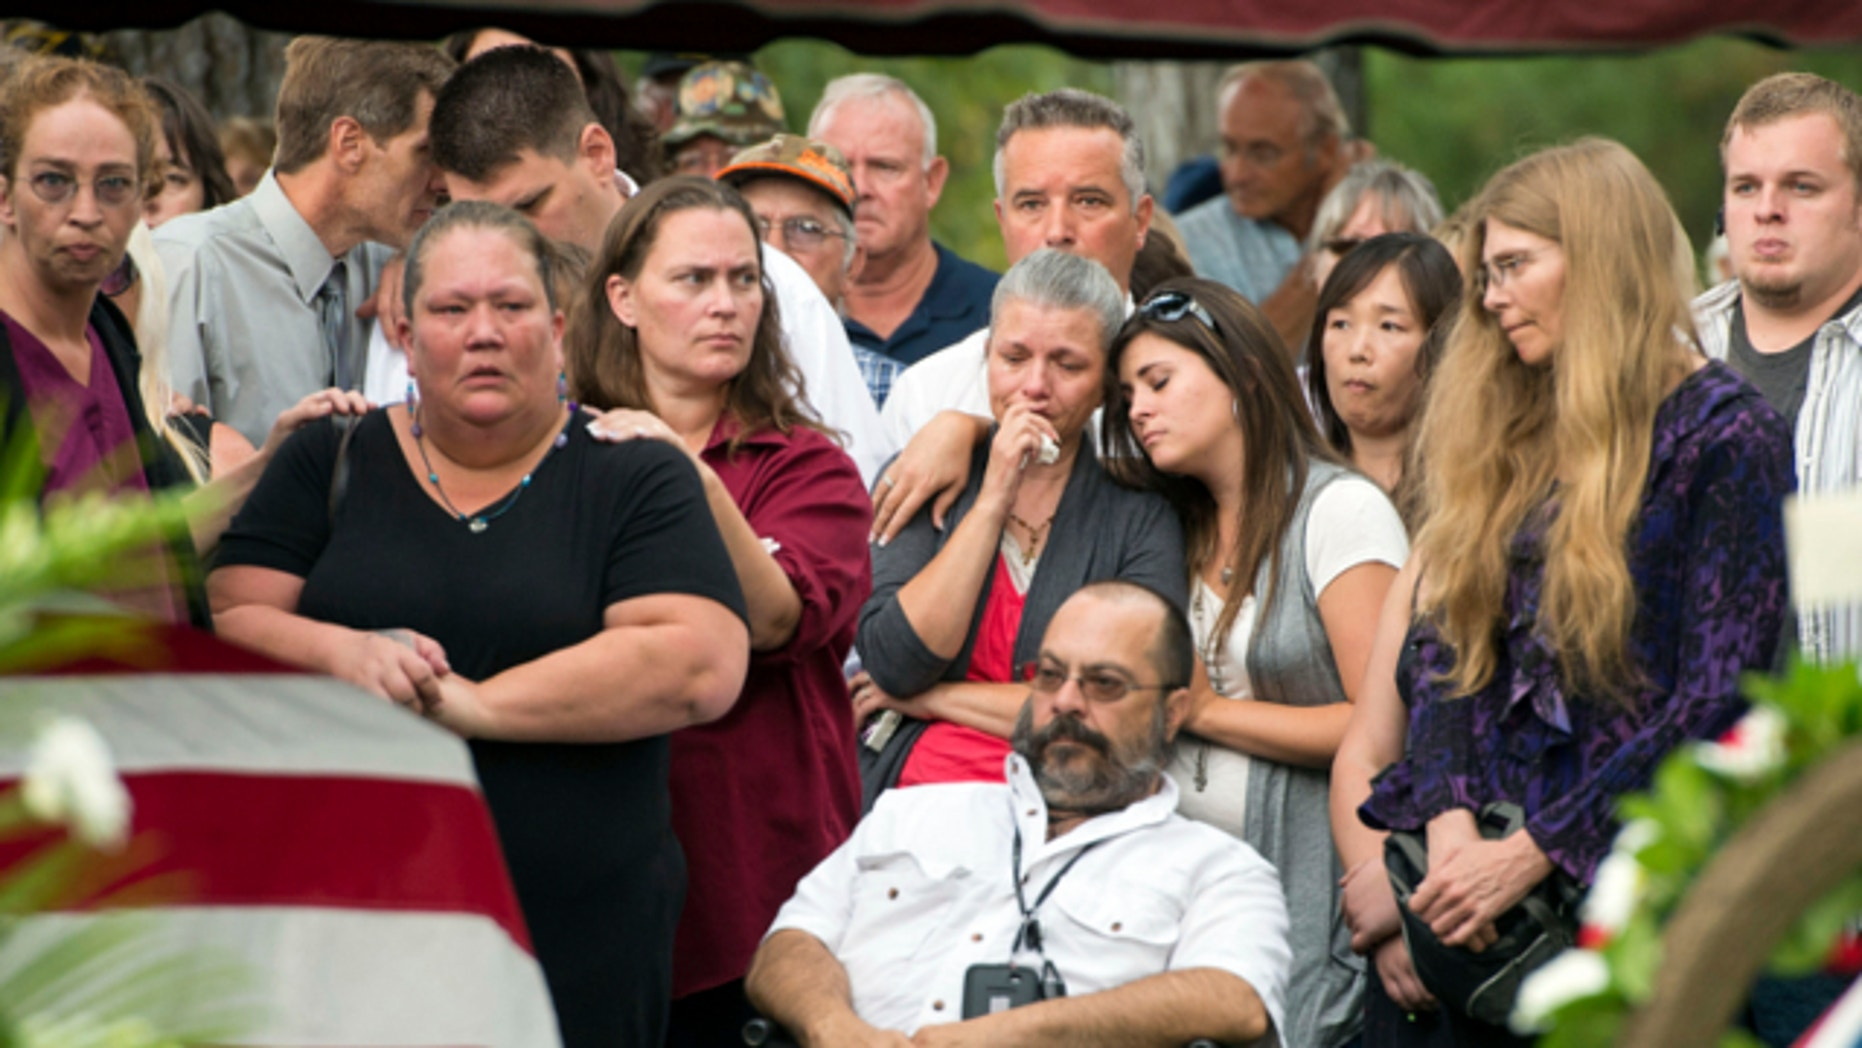 Aug. 29, 2013: With hundreds in attendance, Spokane veteran Delbert Belton is buried with full military honors during a public service at Greenwood Memorial Terrace in Spokane, Wash.